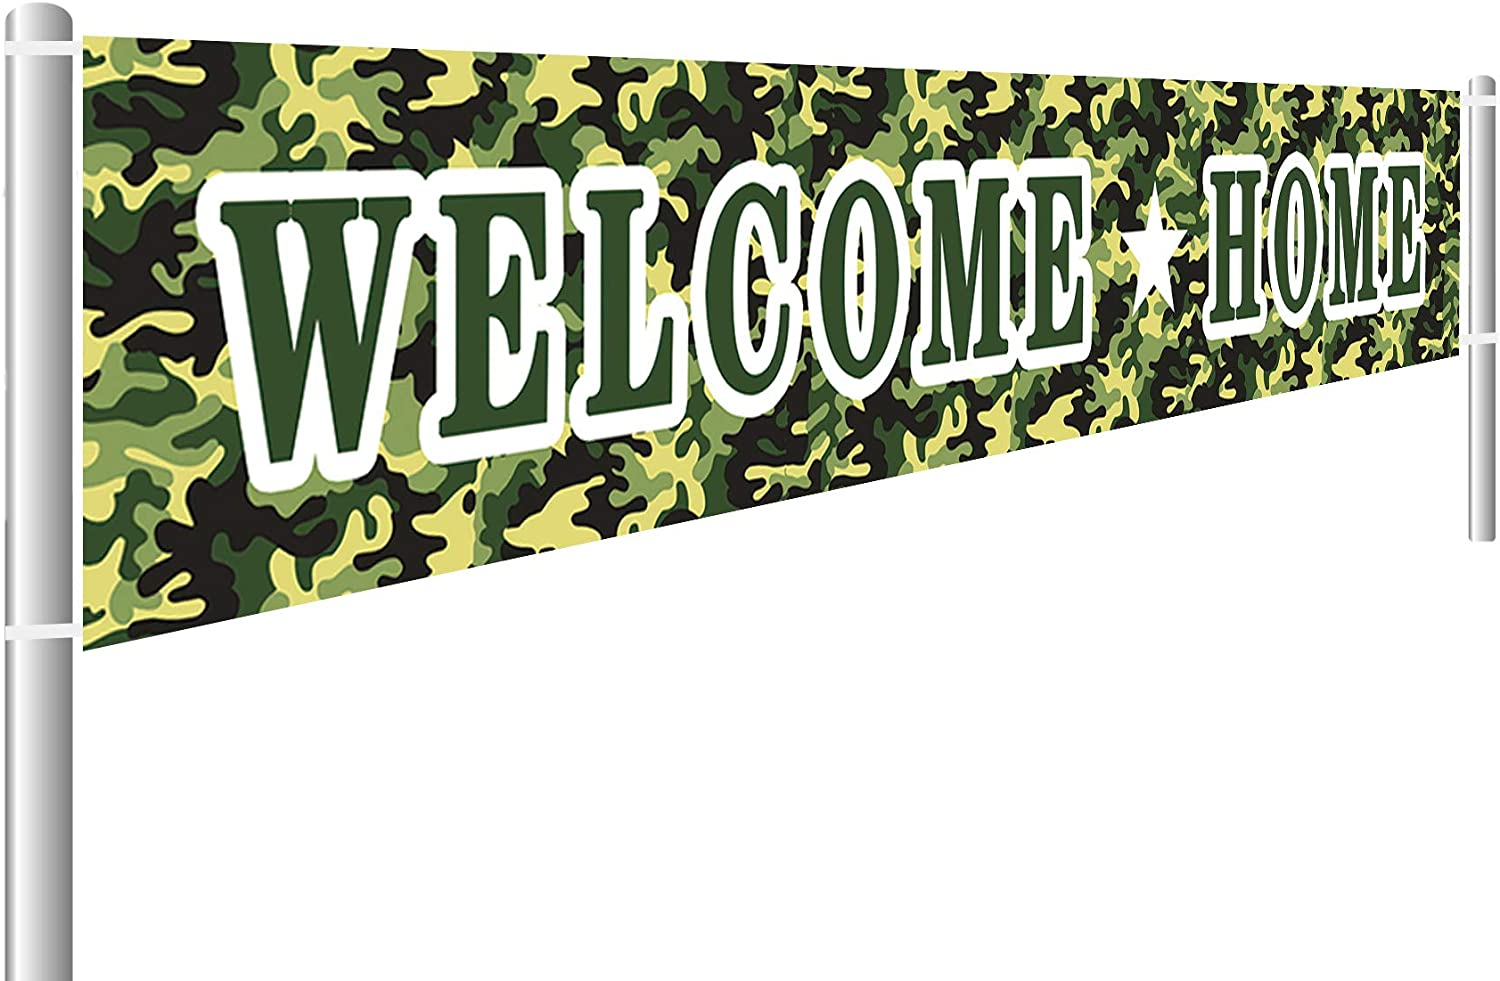 Colormoon Large Welcome Home Banner Military, Military Army Deployment Returning Back Party Decorations, Welcome Home Sign, Outdoor Indoor Decoration (9.8 x 1.6 ft)